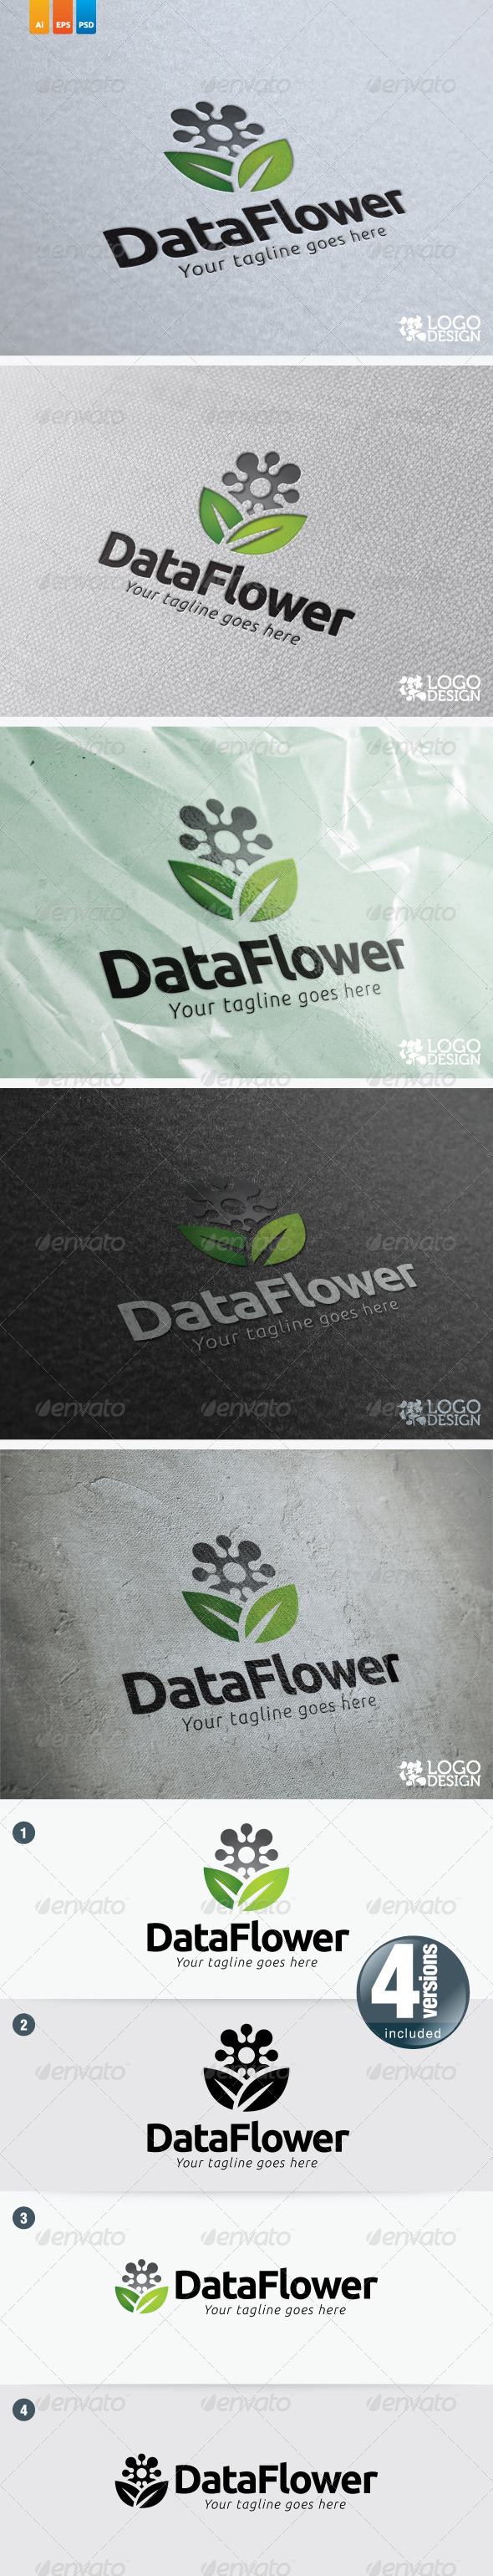 DataFlower